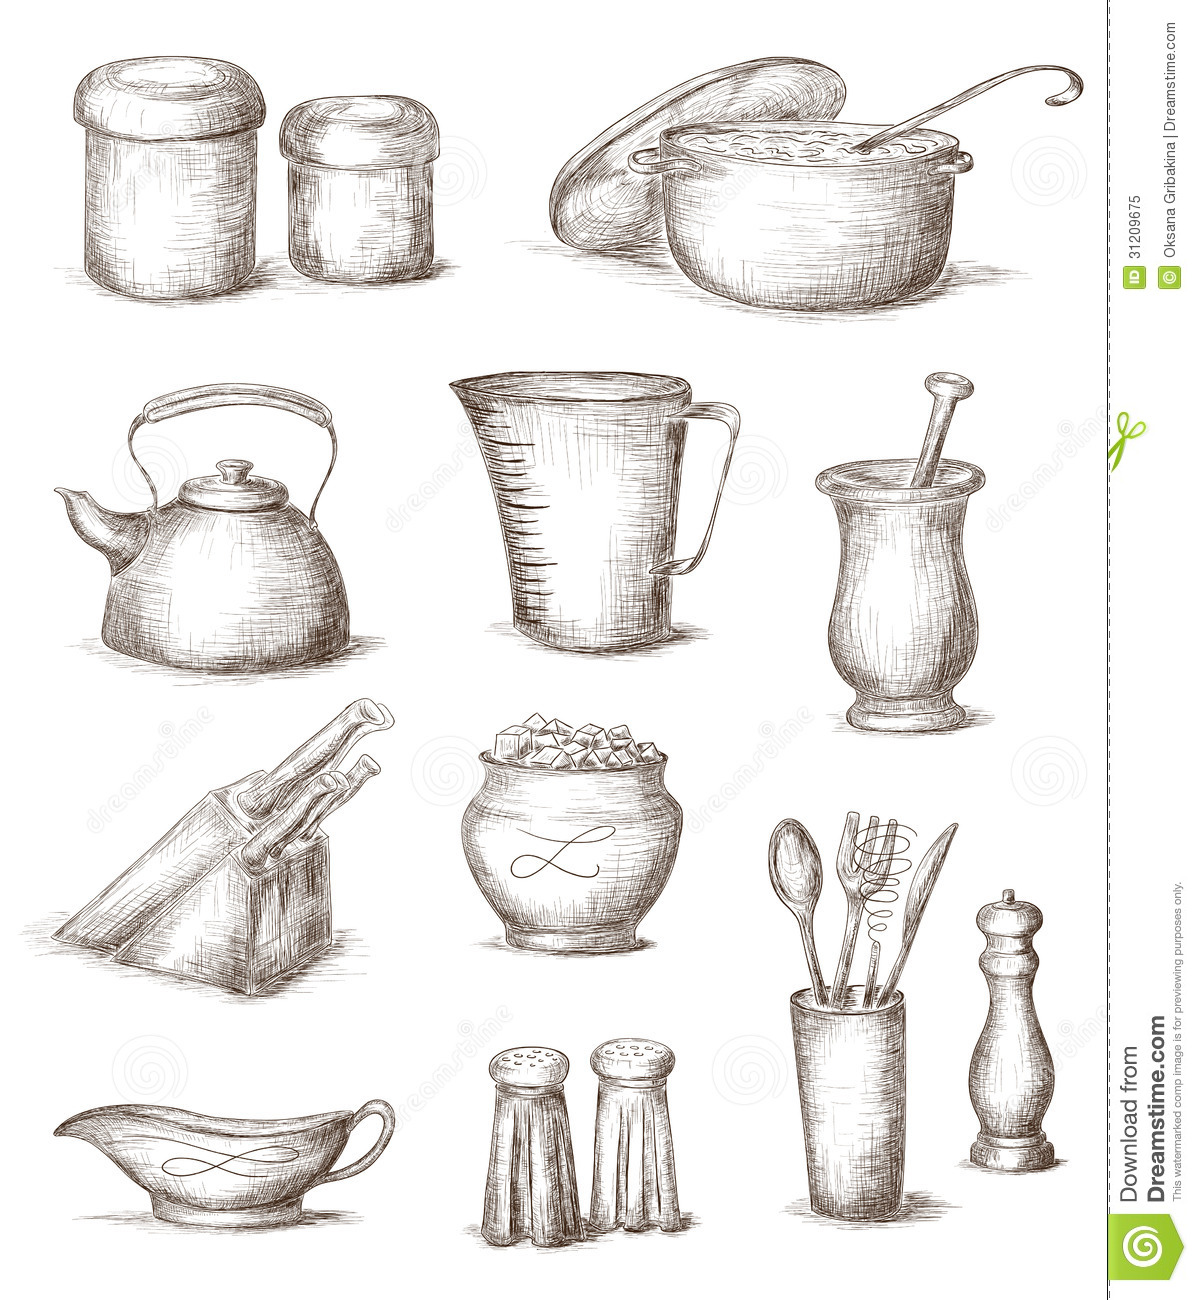 Hand-drawn-kitchen-utensils-illustration-31209675.jpg